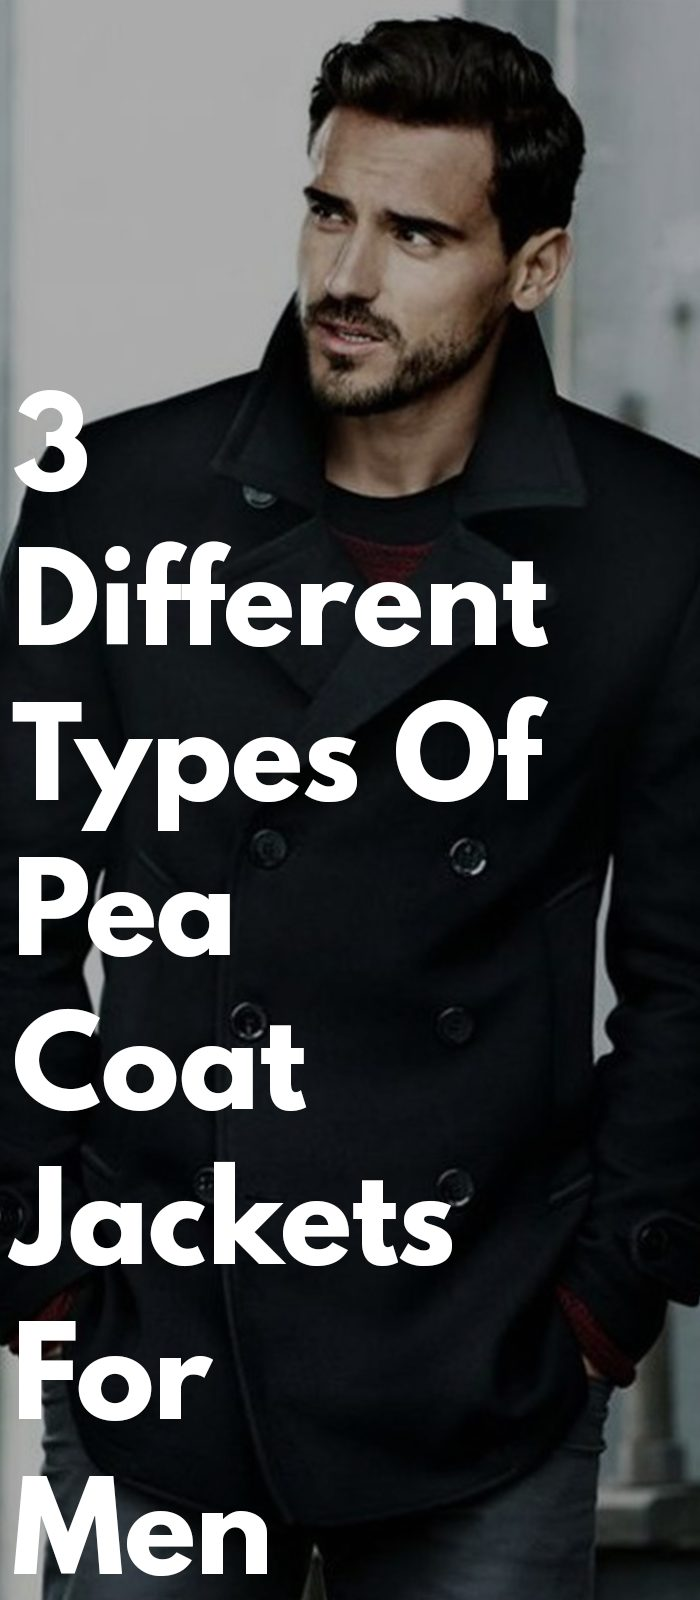 Pea Coat Jackets